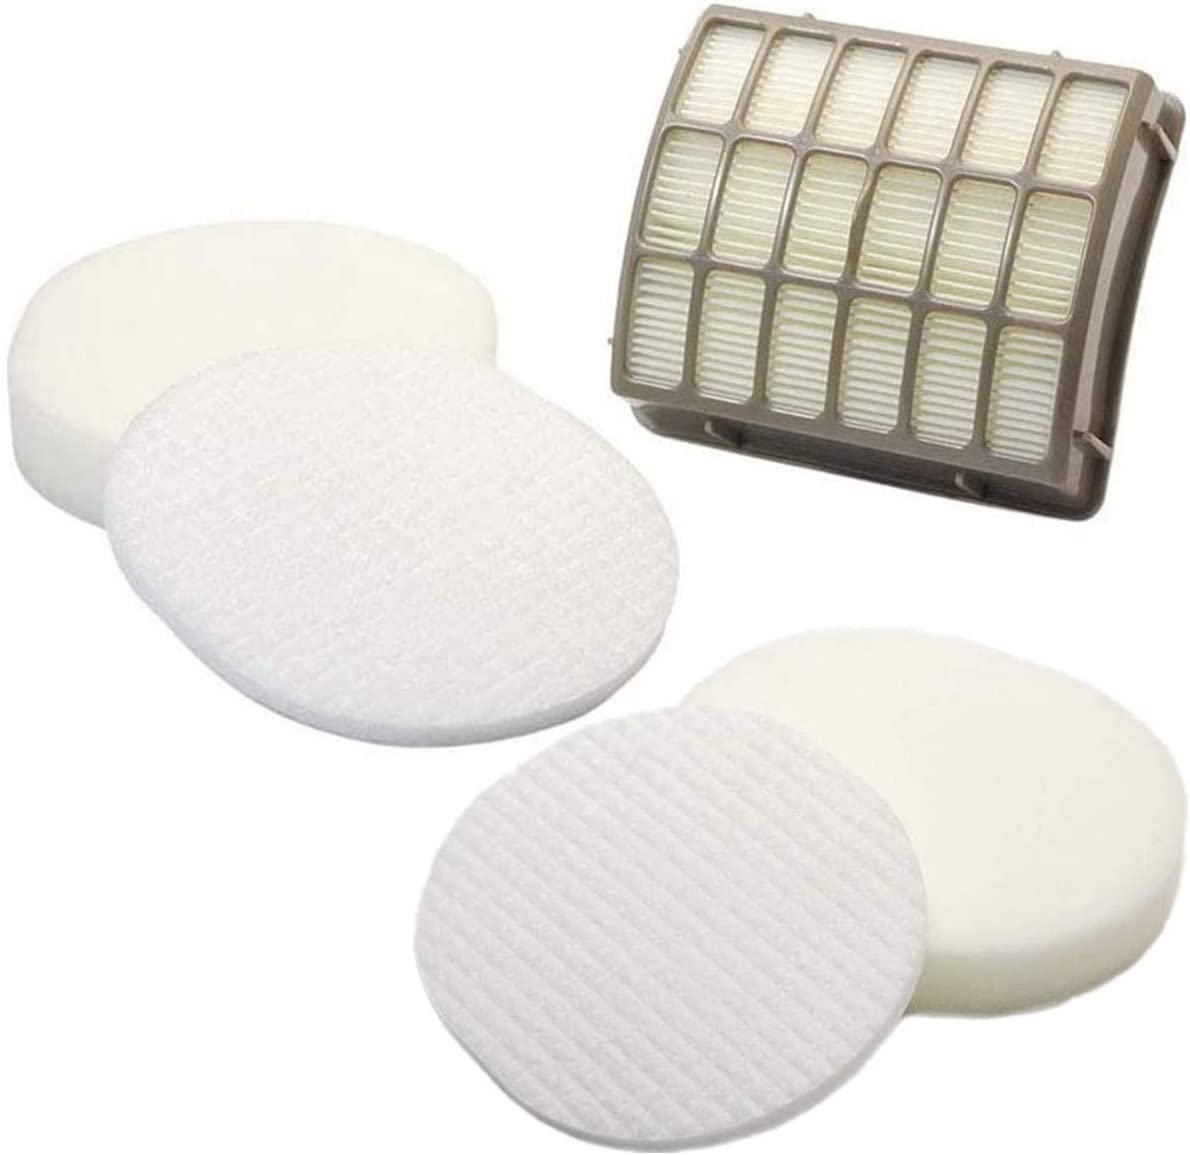 LLHome Replacement Vacuum Filter for Shark Navigator Professional Upright NV60, NV70, NV70 26, NV71, NV80, NV80 26, NV90, NV95, UV420 Vacuums. Part # XFF80